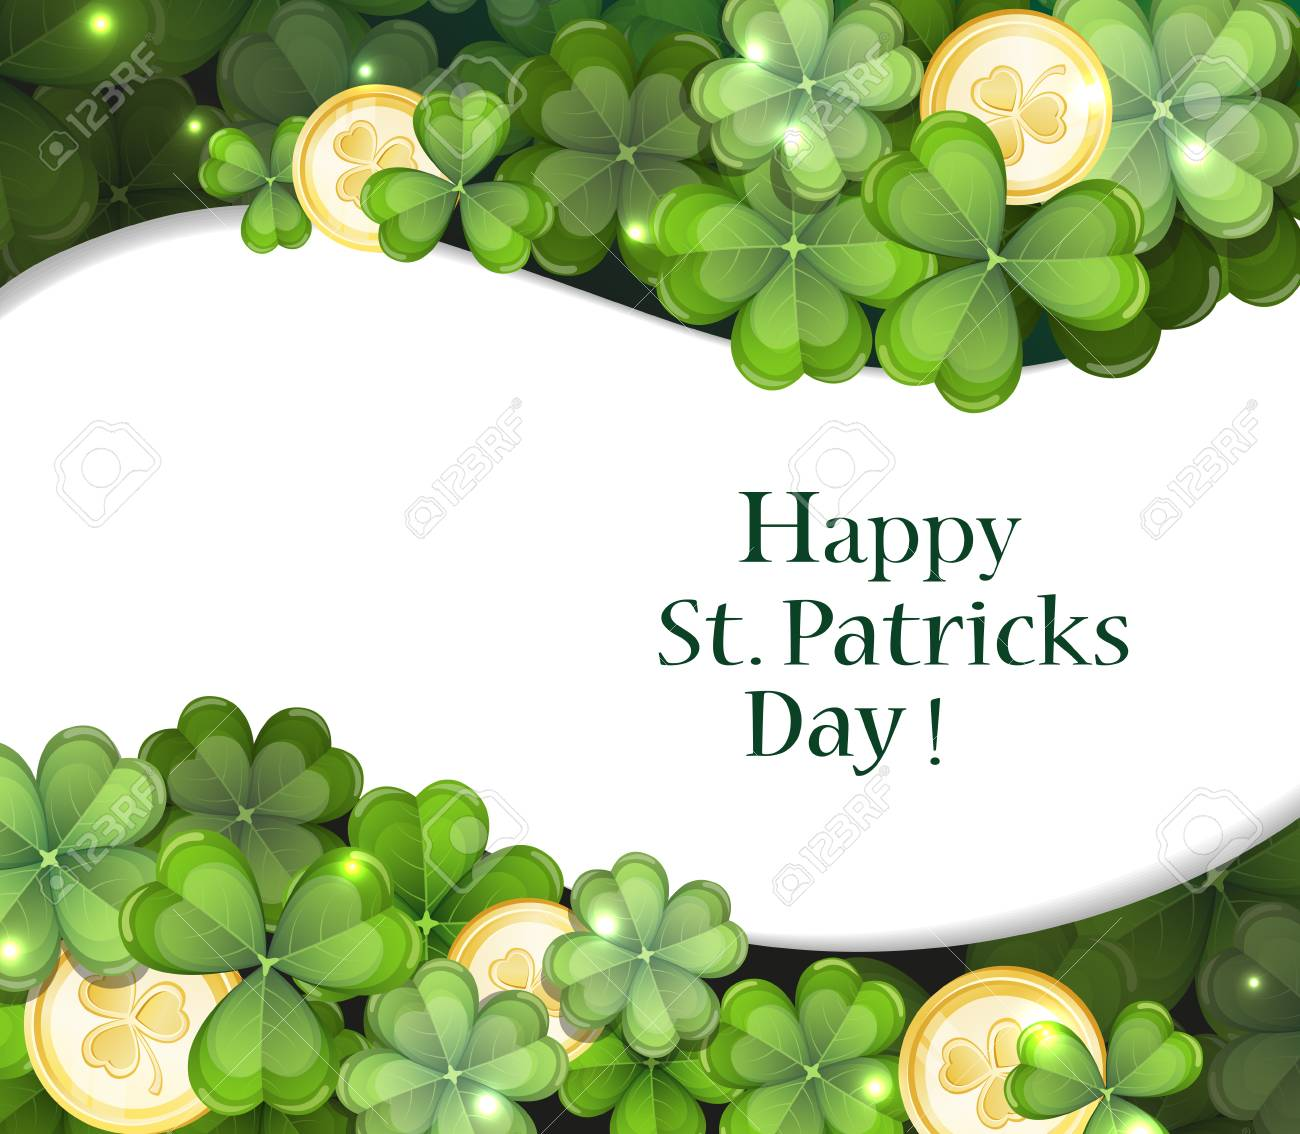 Leprechaun gold coins and clover. St. Patrick's Day background. - 53172778